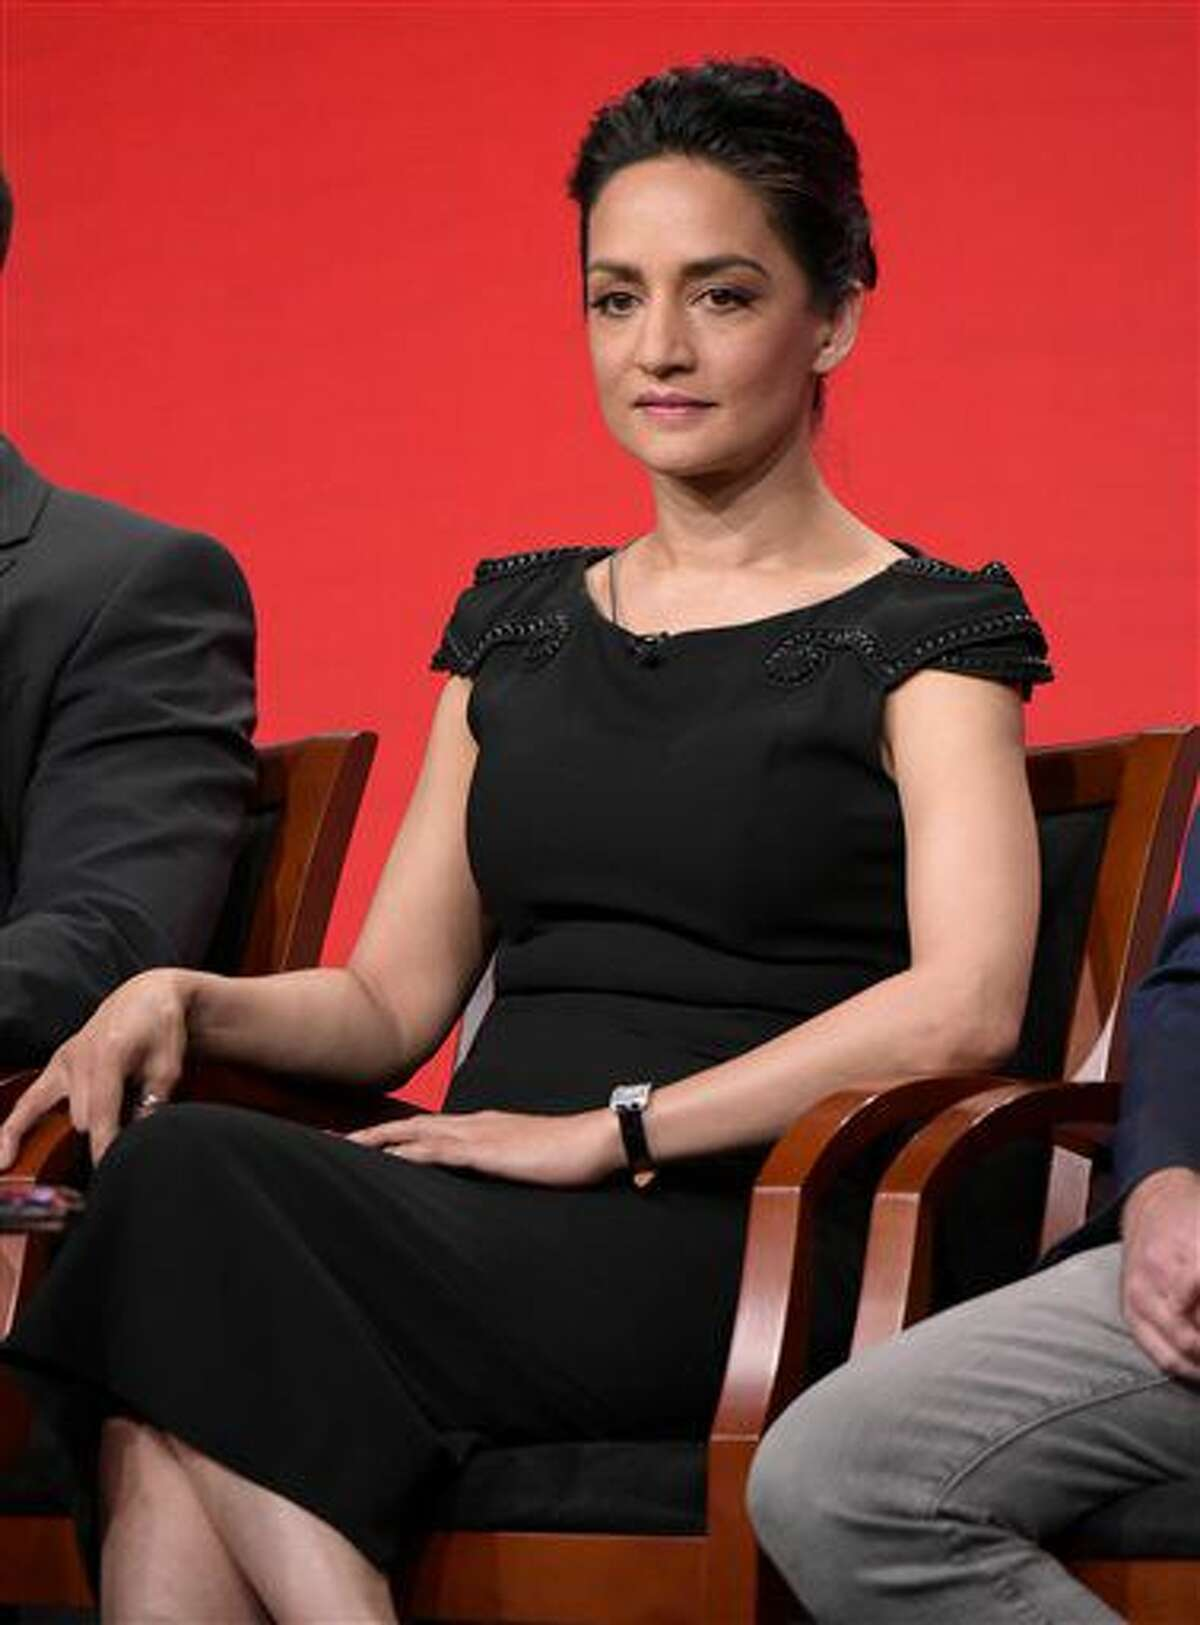 """Archie Panjabi participates in the """"Blindspot"""" panel during the NBCUniversal Television Critics Association summer press tour on Tuesday, Aug. 2, 2016, in Beverly Hills, Calif. (Photo by Richard Shotwell/Invision/AP)"""